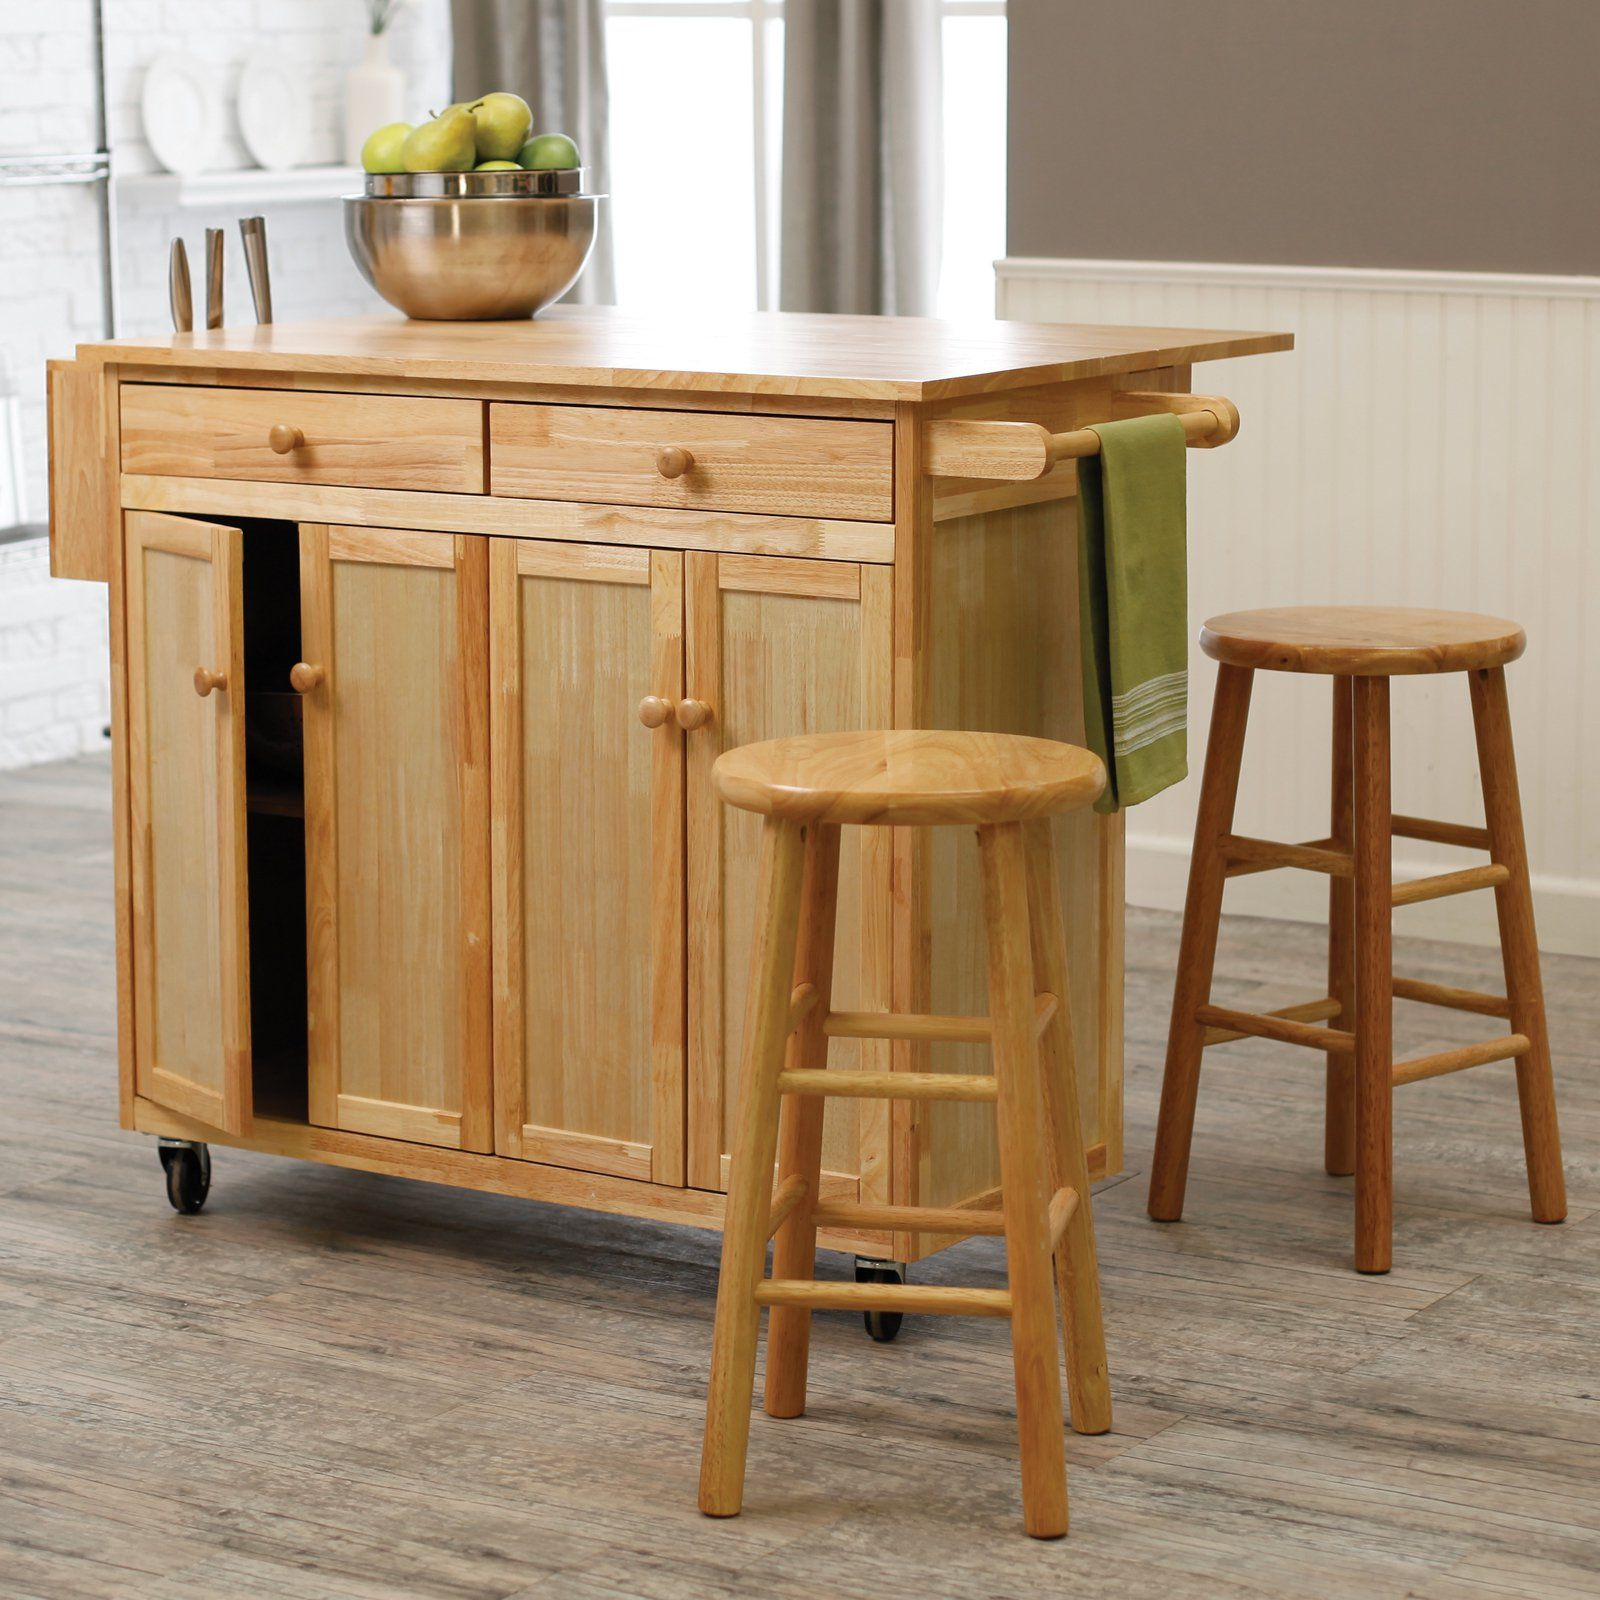 Superb Belham Living Vinton Portable Kitchen Island With Optional Stools   Kitchen  Islands And Carts At Hayneedle